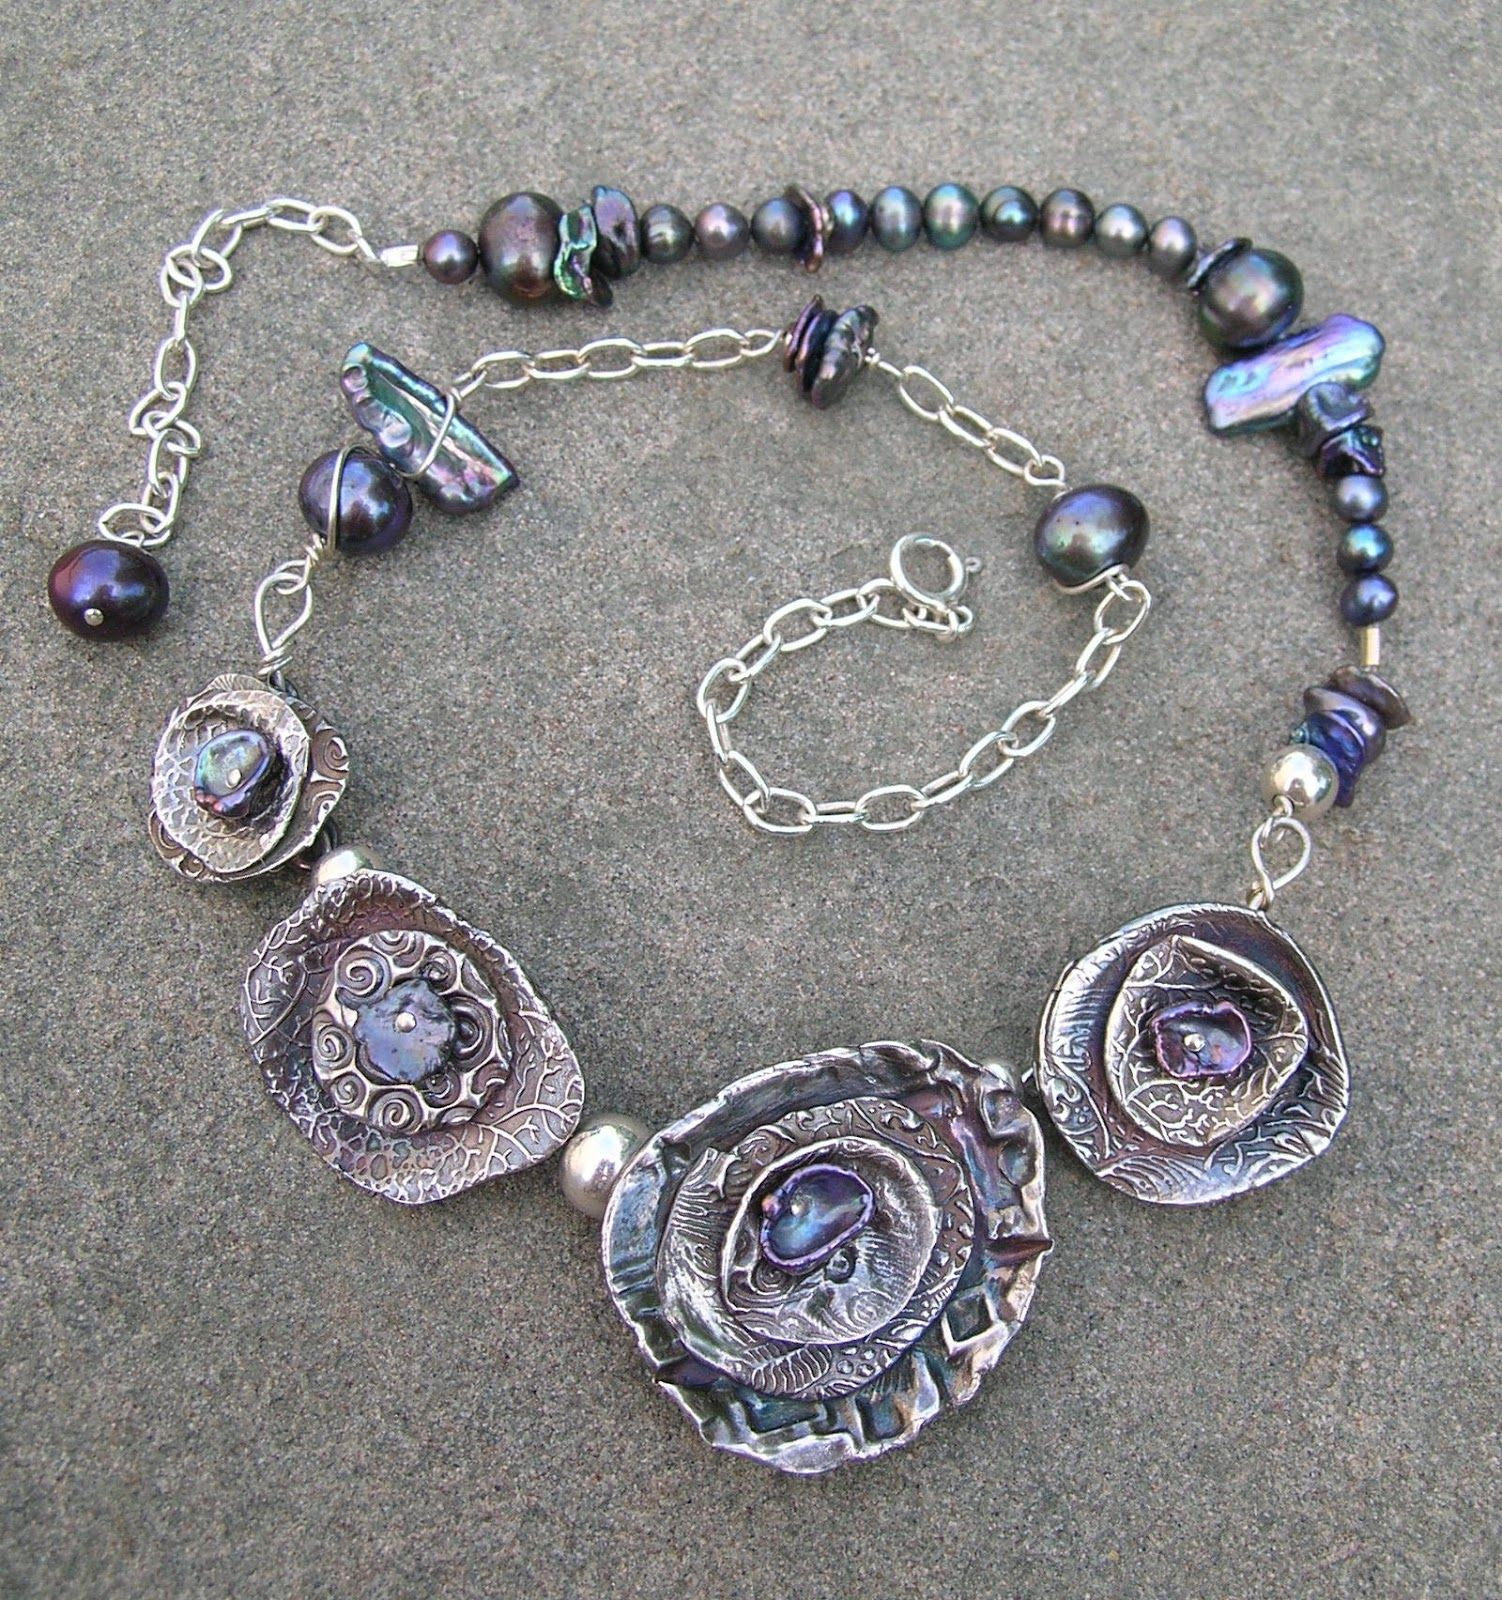 One of a Kind Jewelry for One of a Kind You: Jewelry Gallery